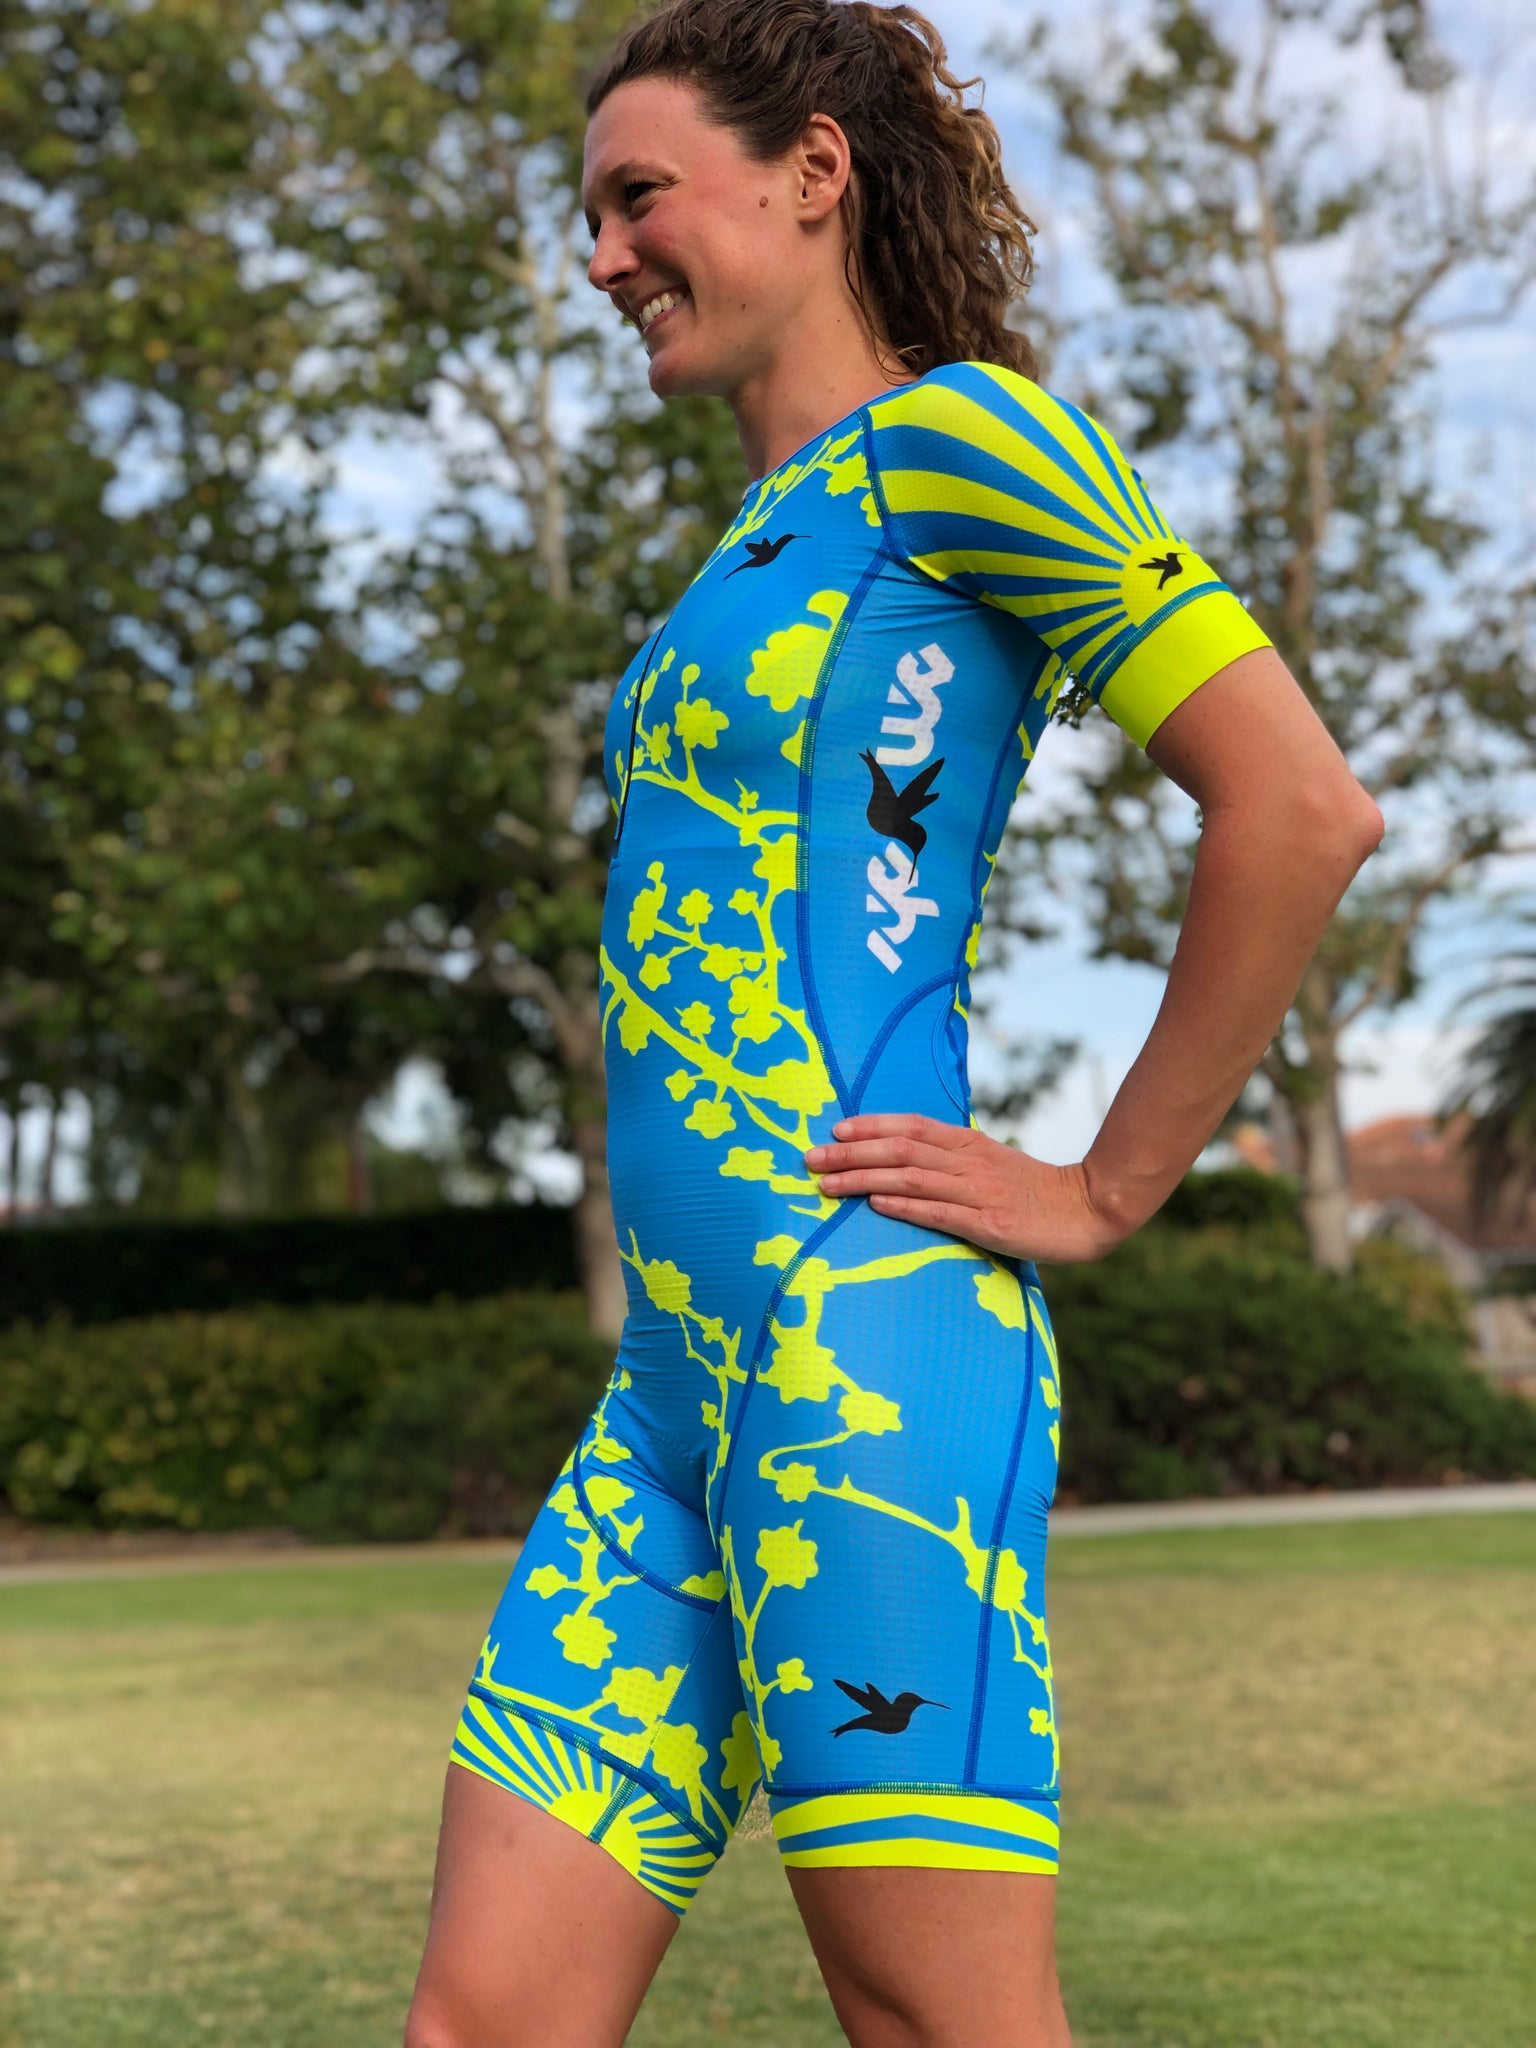 Blue Sakura Sun Custom Aero Suit